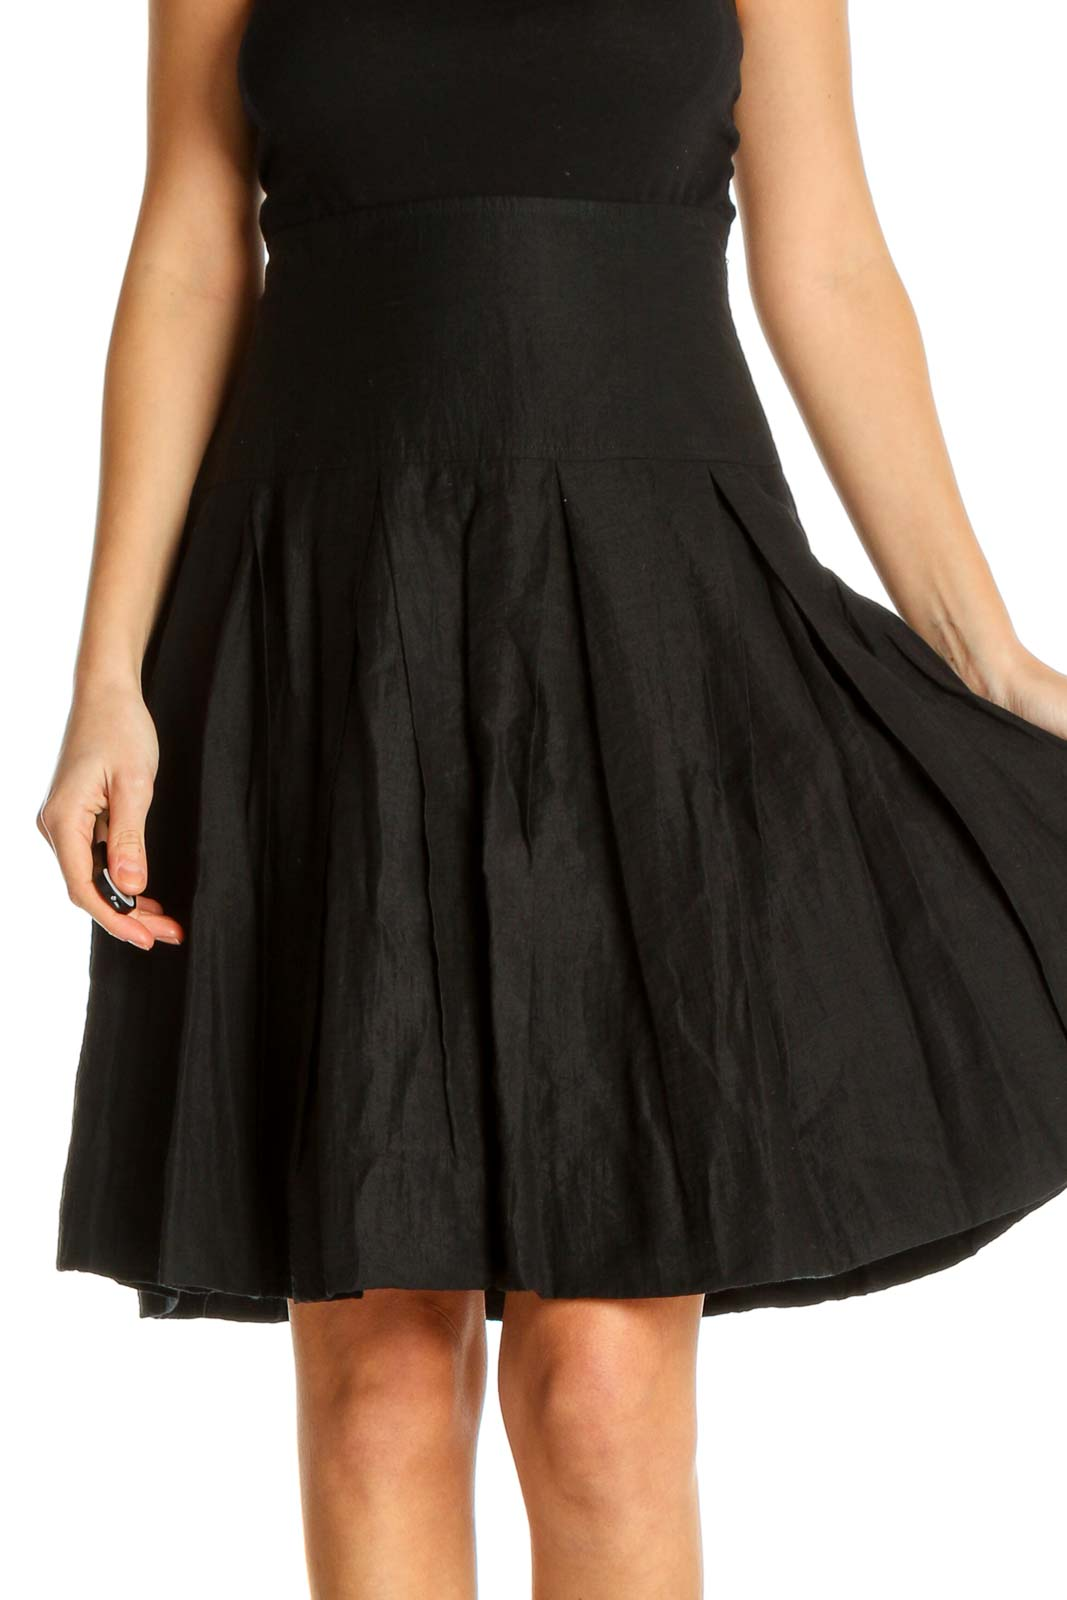 Black Textured Chic Flared Skirt Front